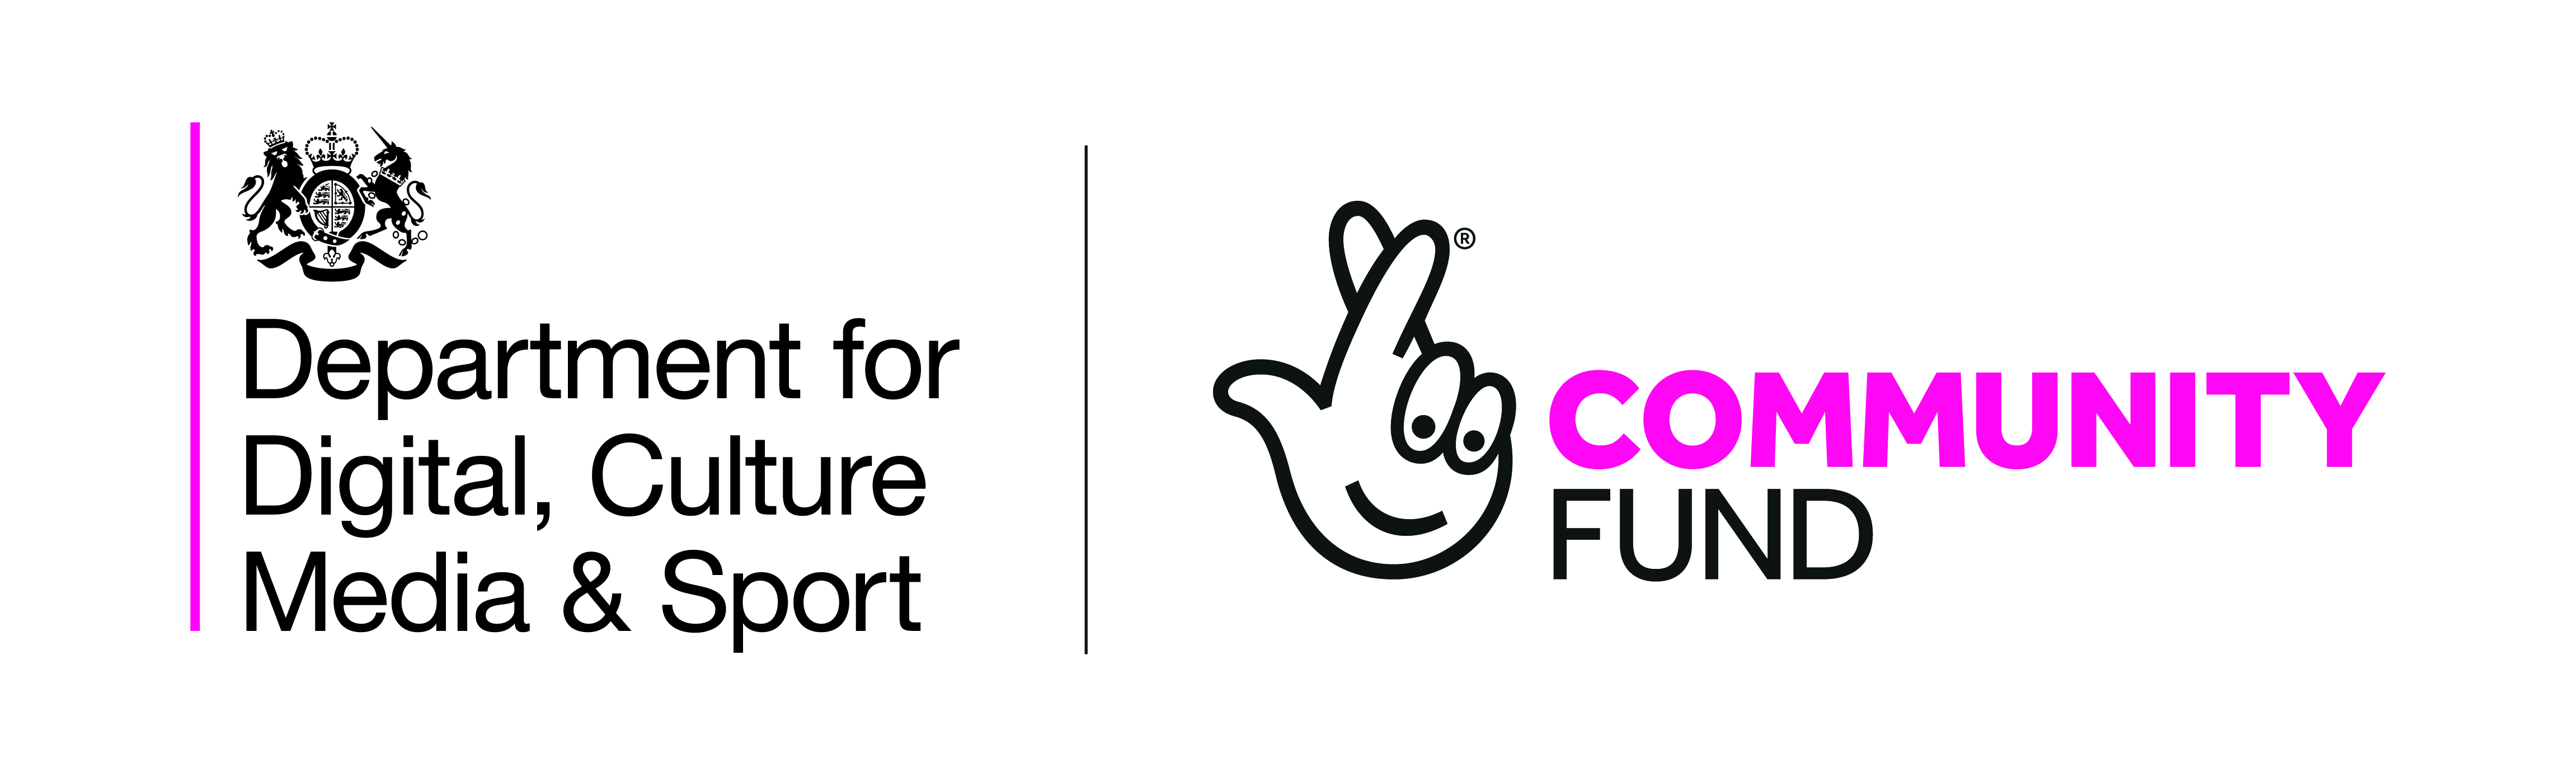 DCMS and Nastional Lottery Community Fund logos